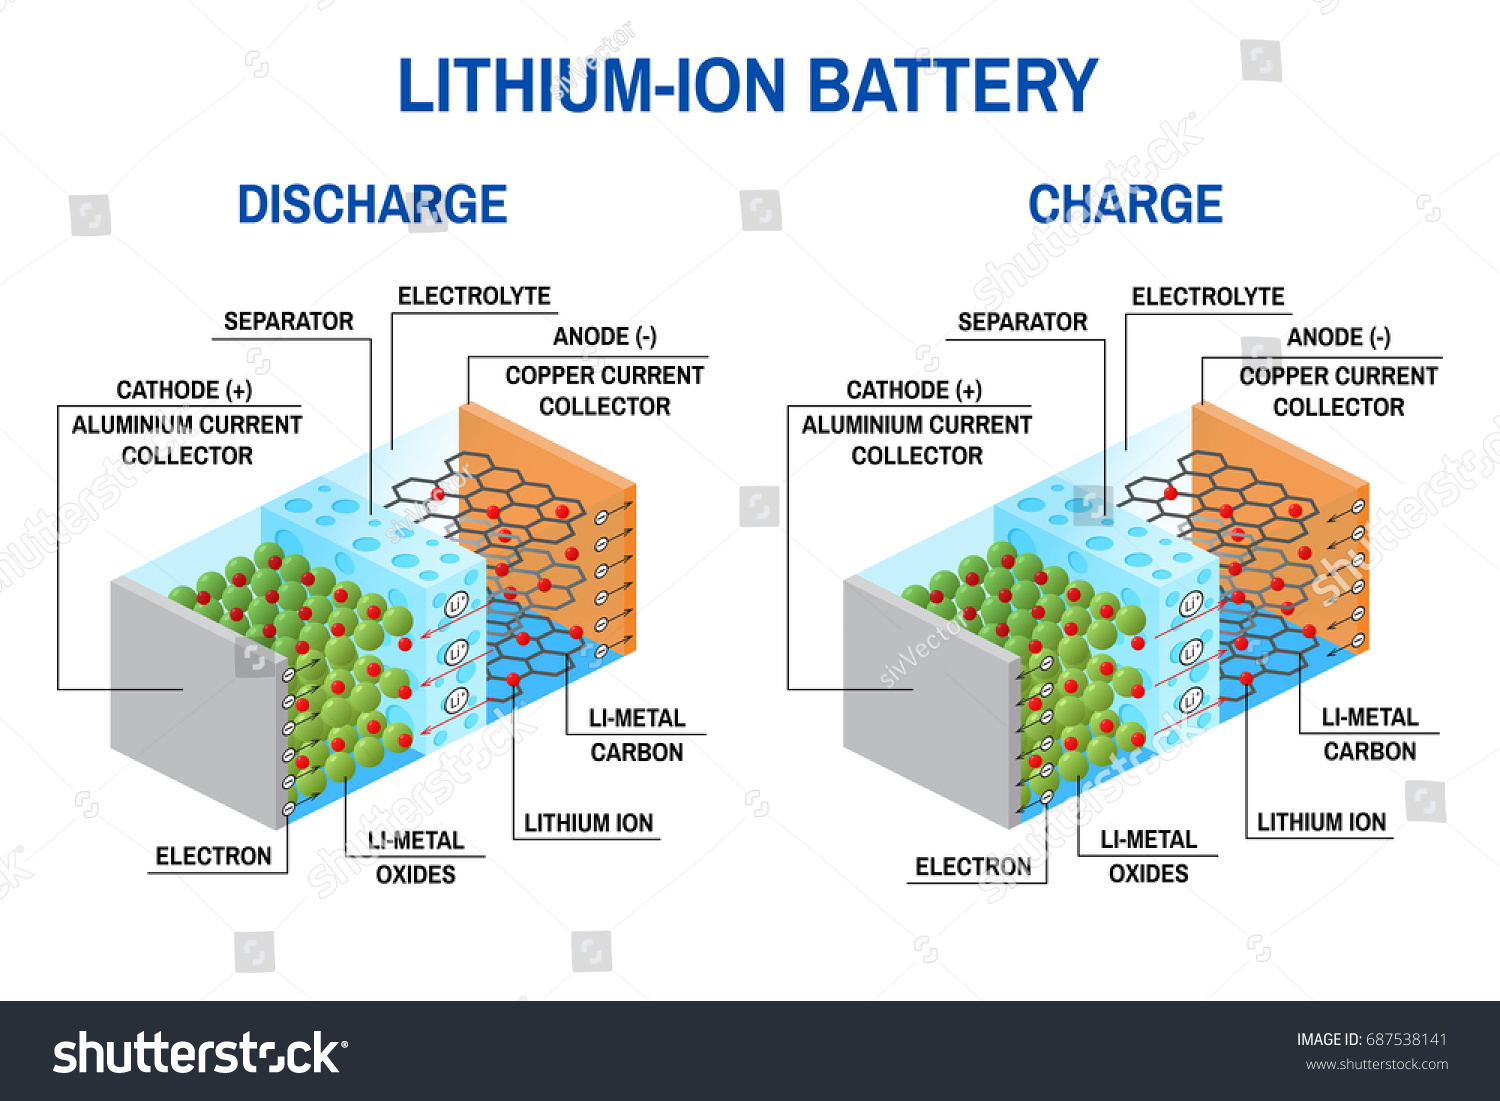 Liion Battery Diagram Vector Illustration Rechargeable Image Hydrogen Fuel Cell Infographic Li Ion In Which Lithium Ions Move